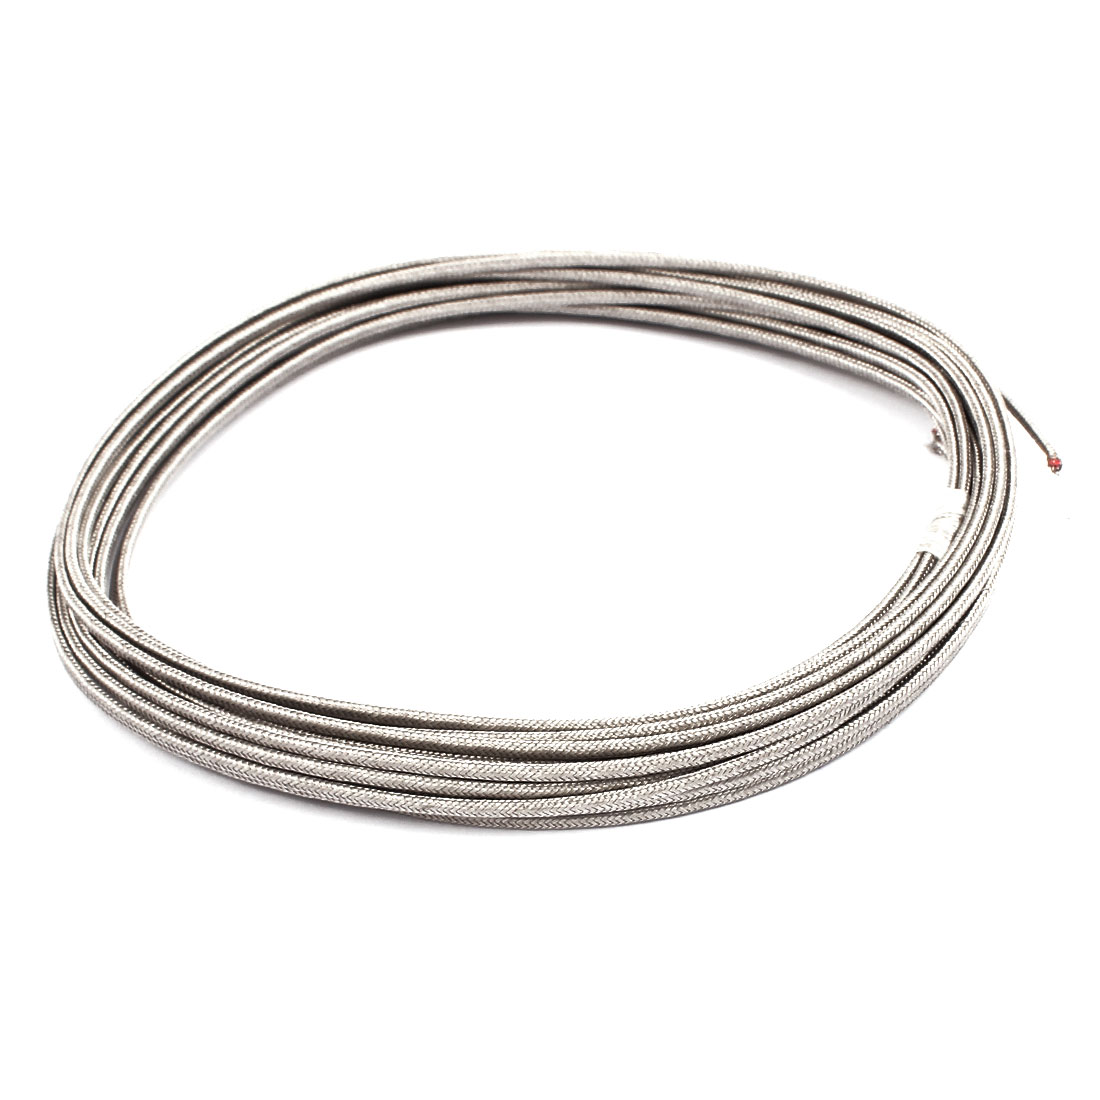 8 Meter 0.5mm Width Silver Tone Metal K Type Thermocouple Extension Wire